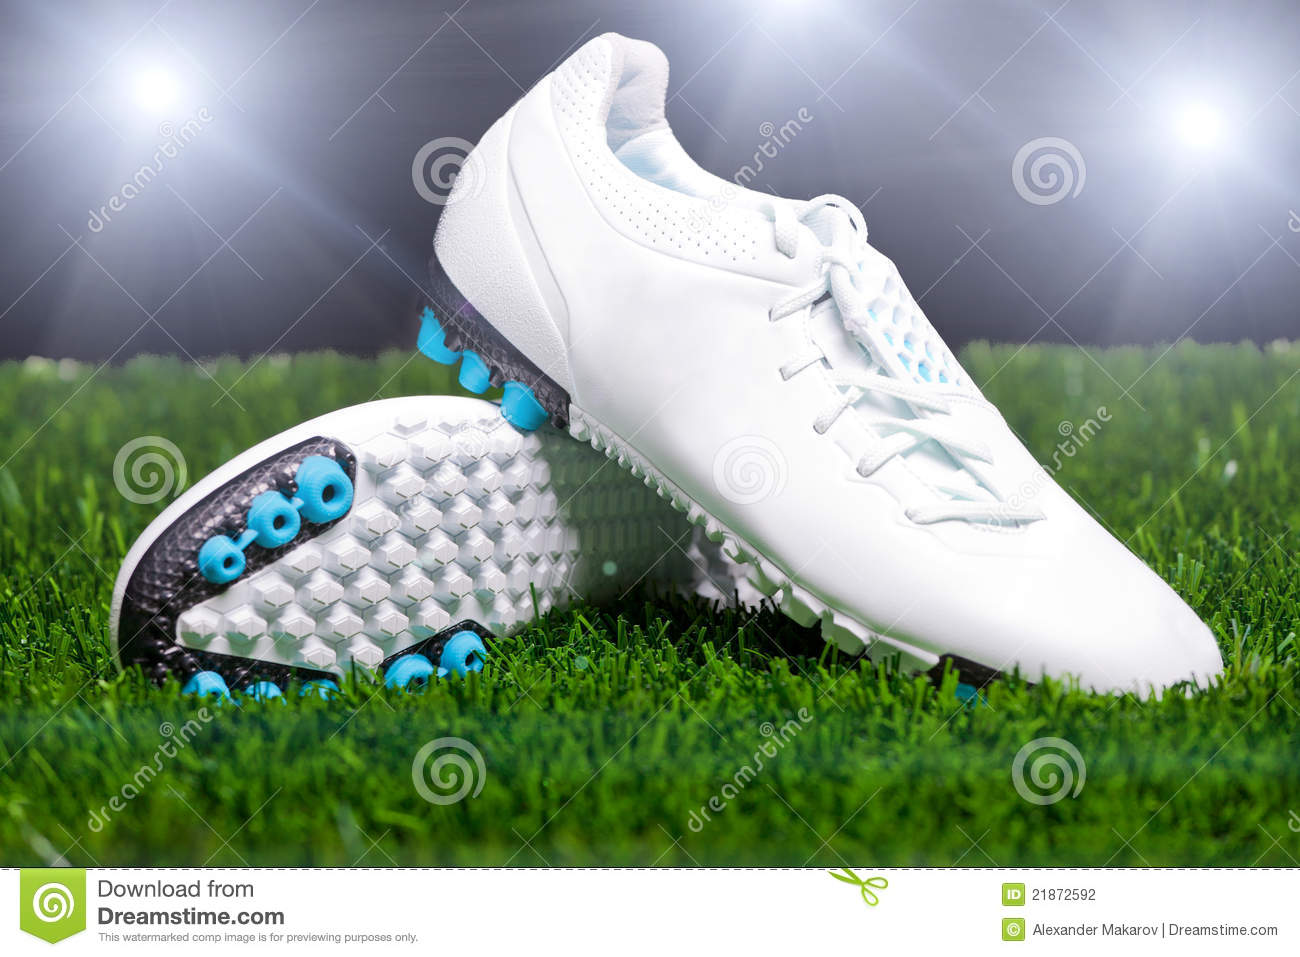 7fb2d23ed7c Football Boots On The Grass Stock Photo - Image of foot